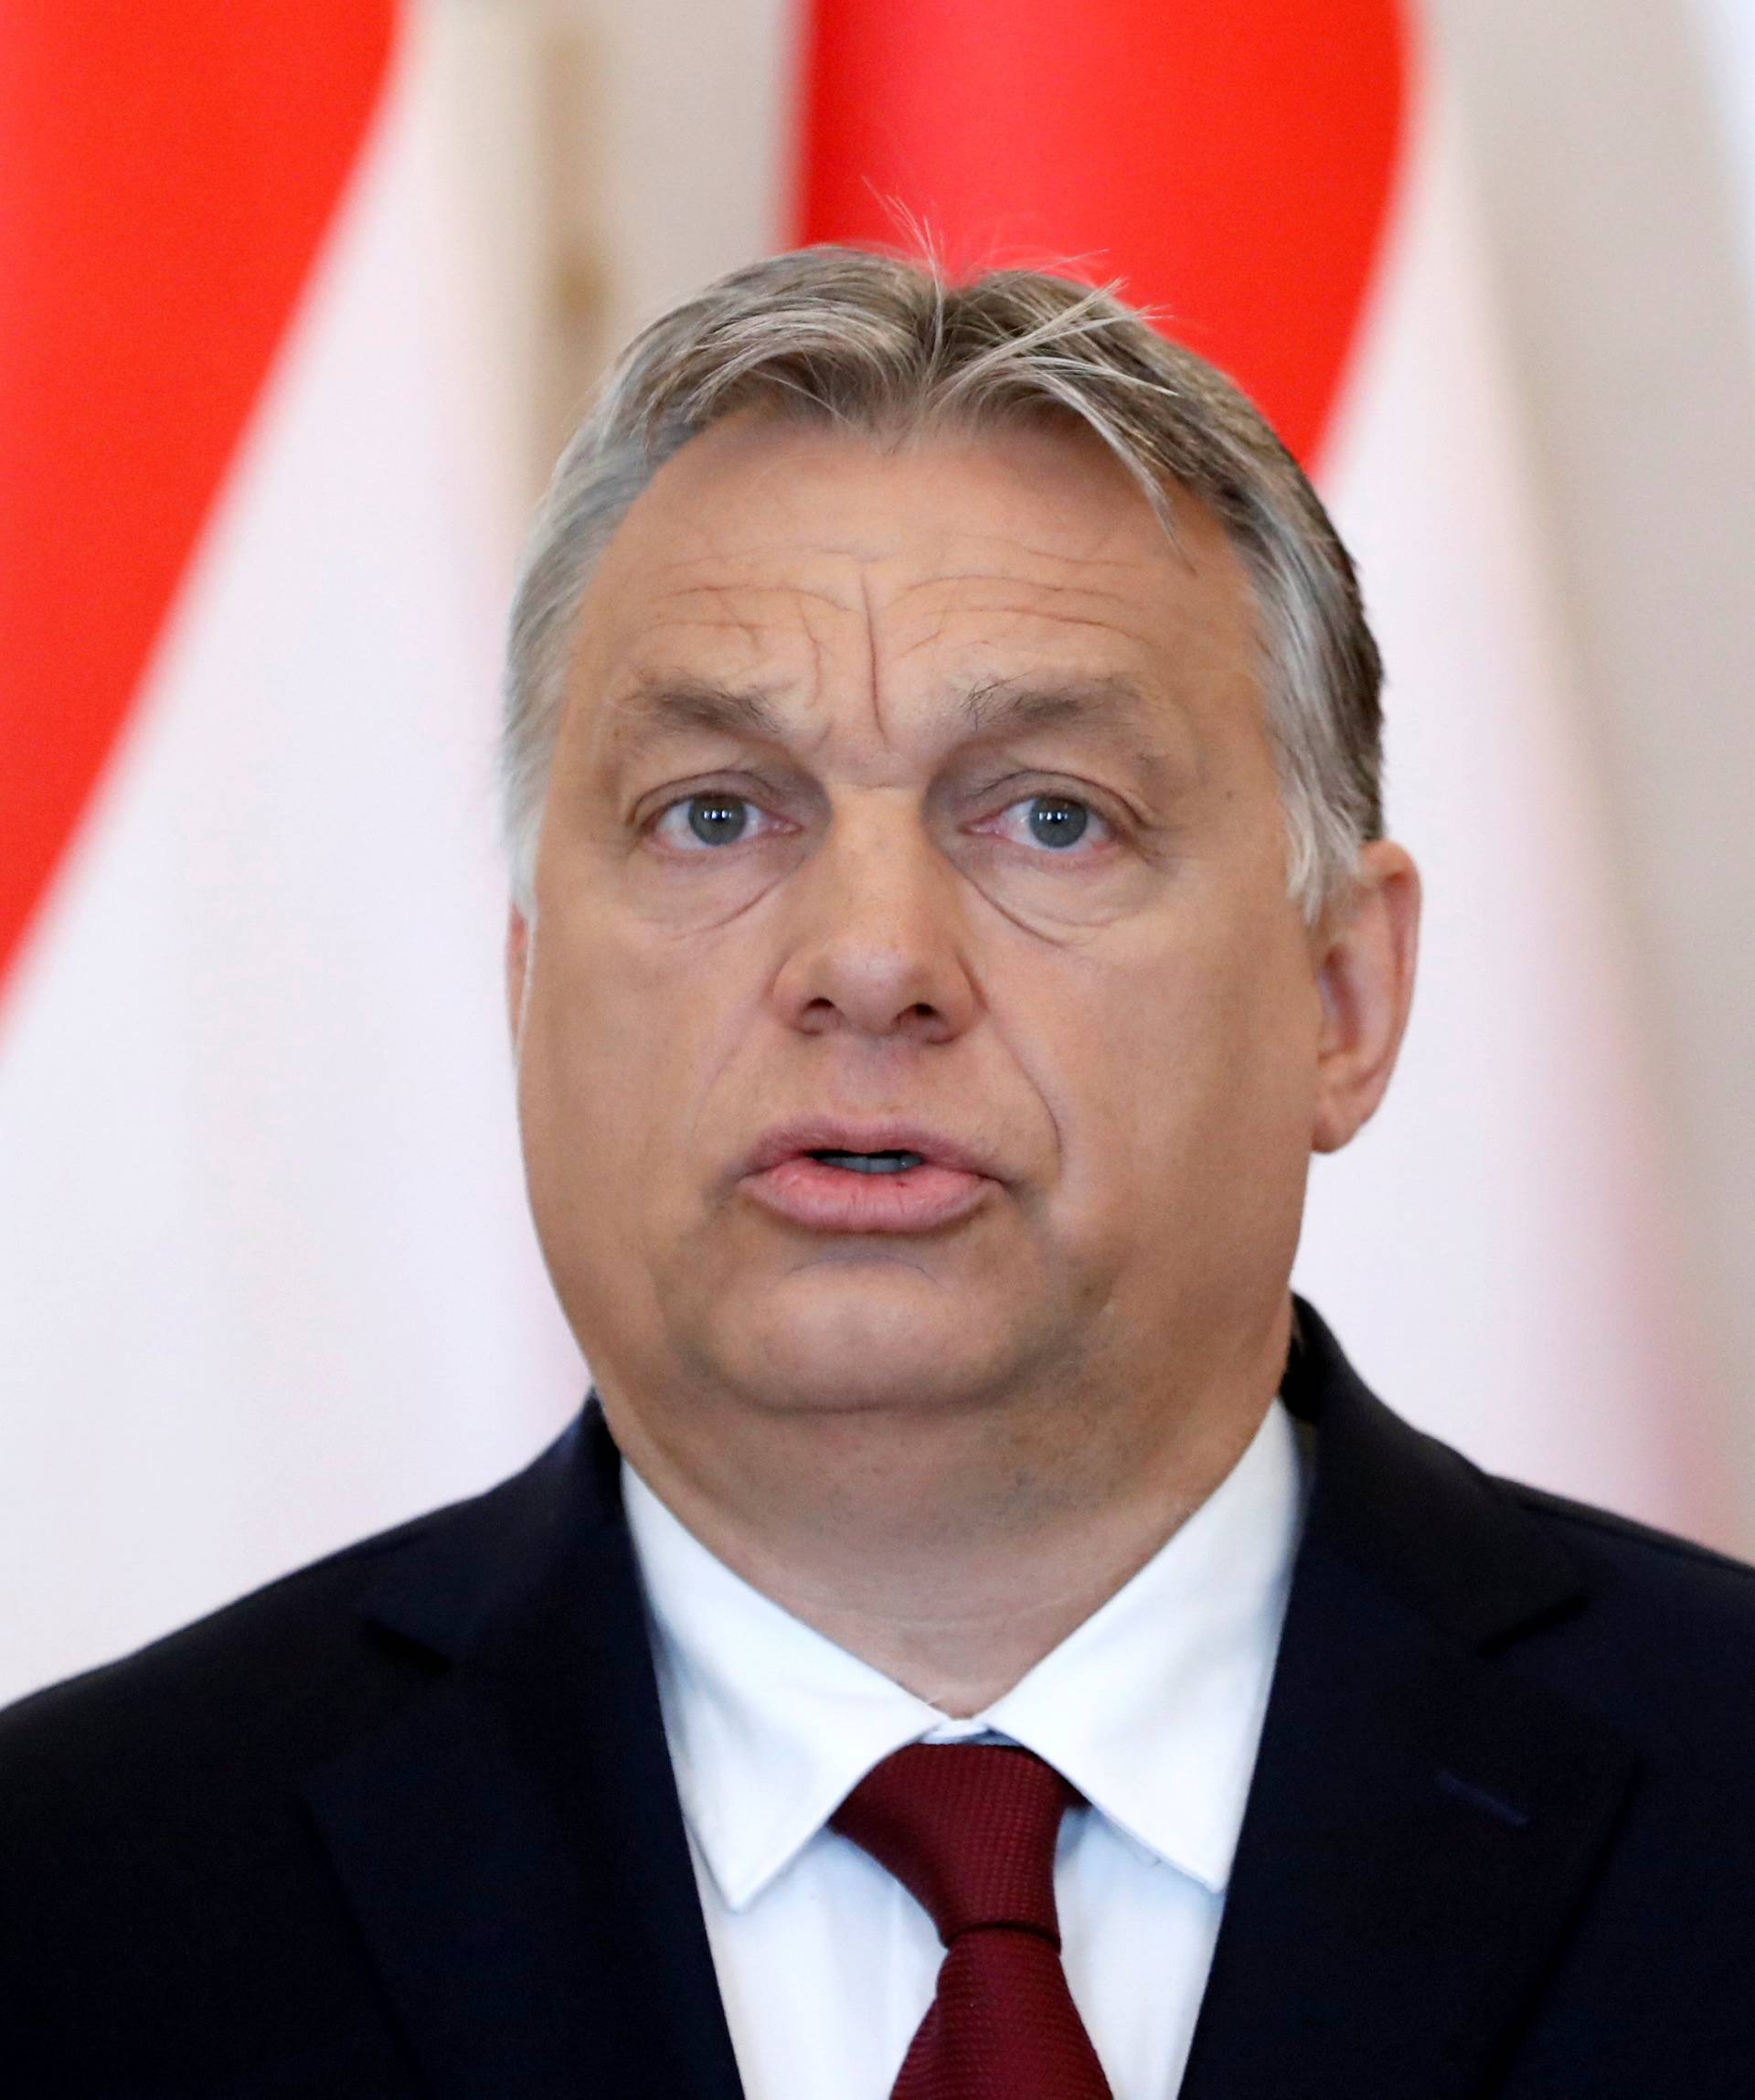 Hungarian PM Orban gives a statement to the media at the Presidential Palace in Budapest